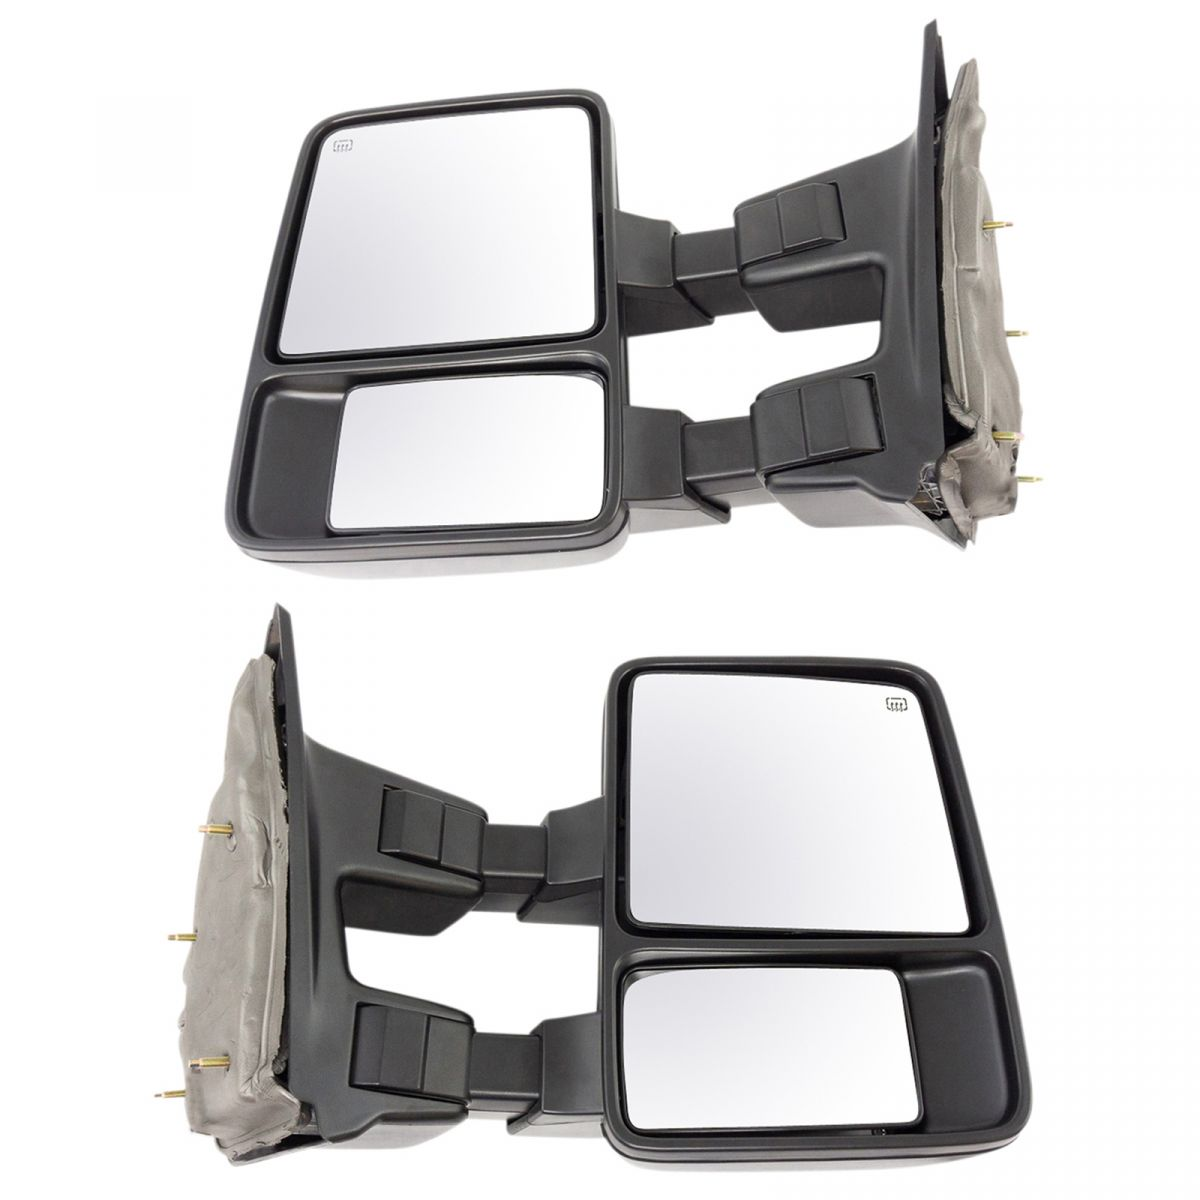 Tow Mirror Power Textured Black Pair Set of 2 for Ford Super Duty Pickup New